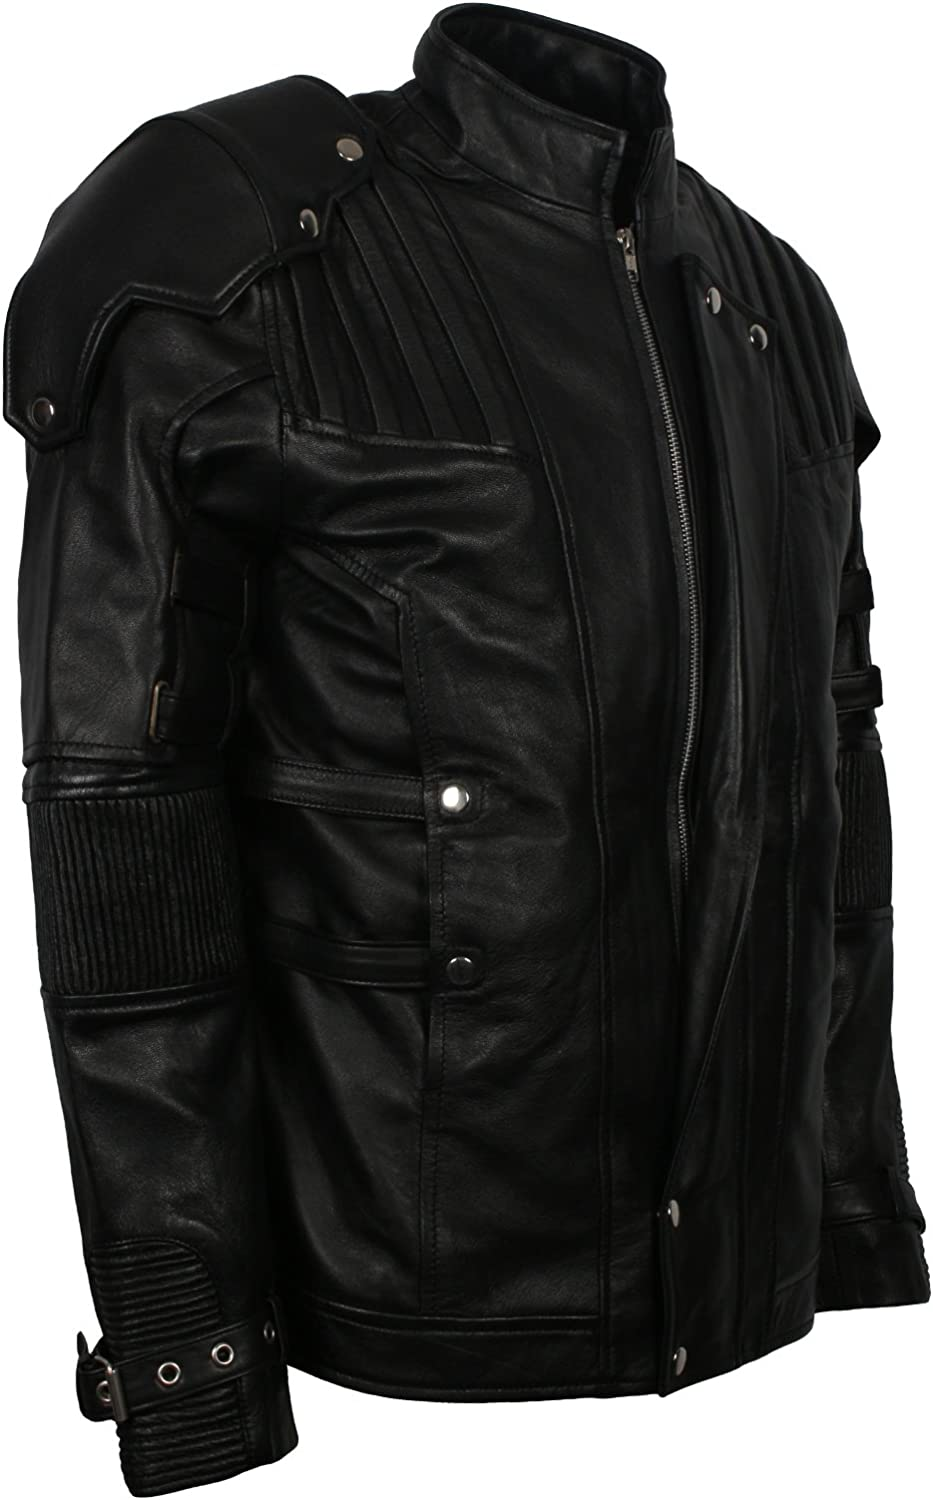 Herts Leather Mens Hollywood Fashion Leather Jacket Galaxy Lord Inspirational Genuine Leather Jacket